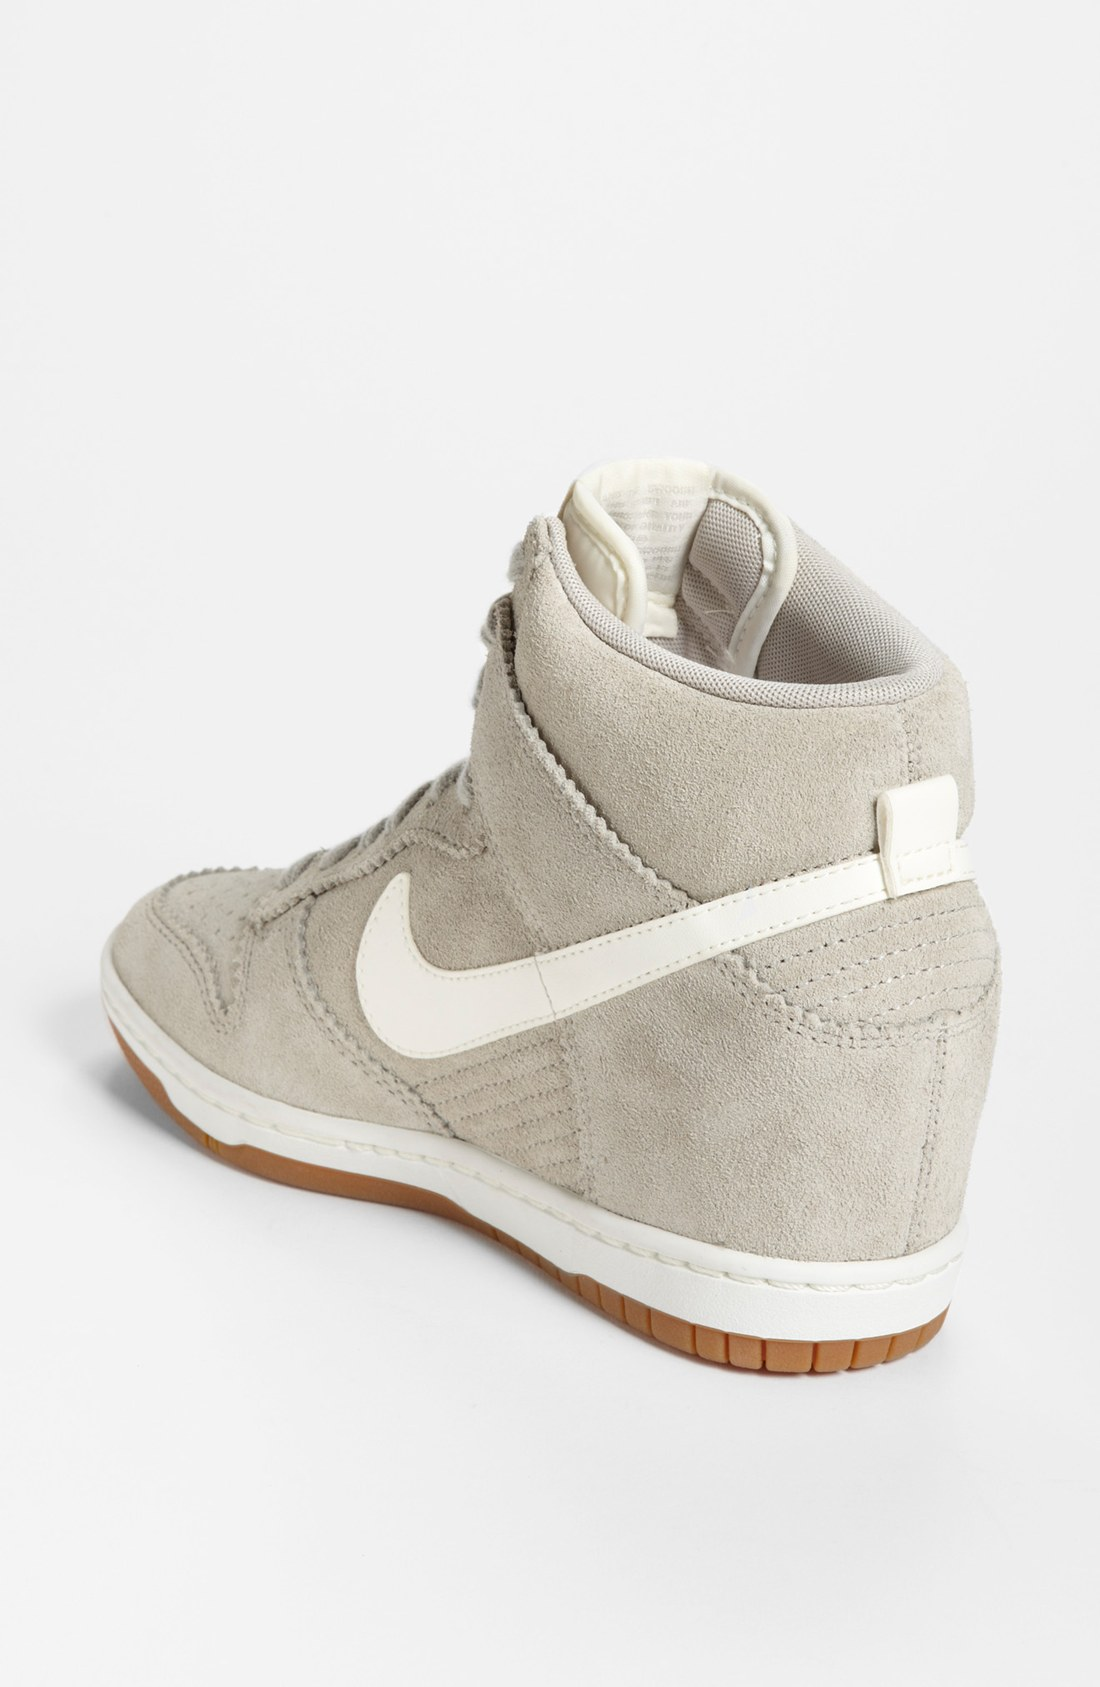 nike dunk sky hi wedge sneaker in gray lyst. Black Bedroom Furniture Sets. Home Design Ideas